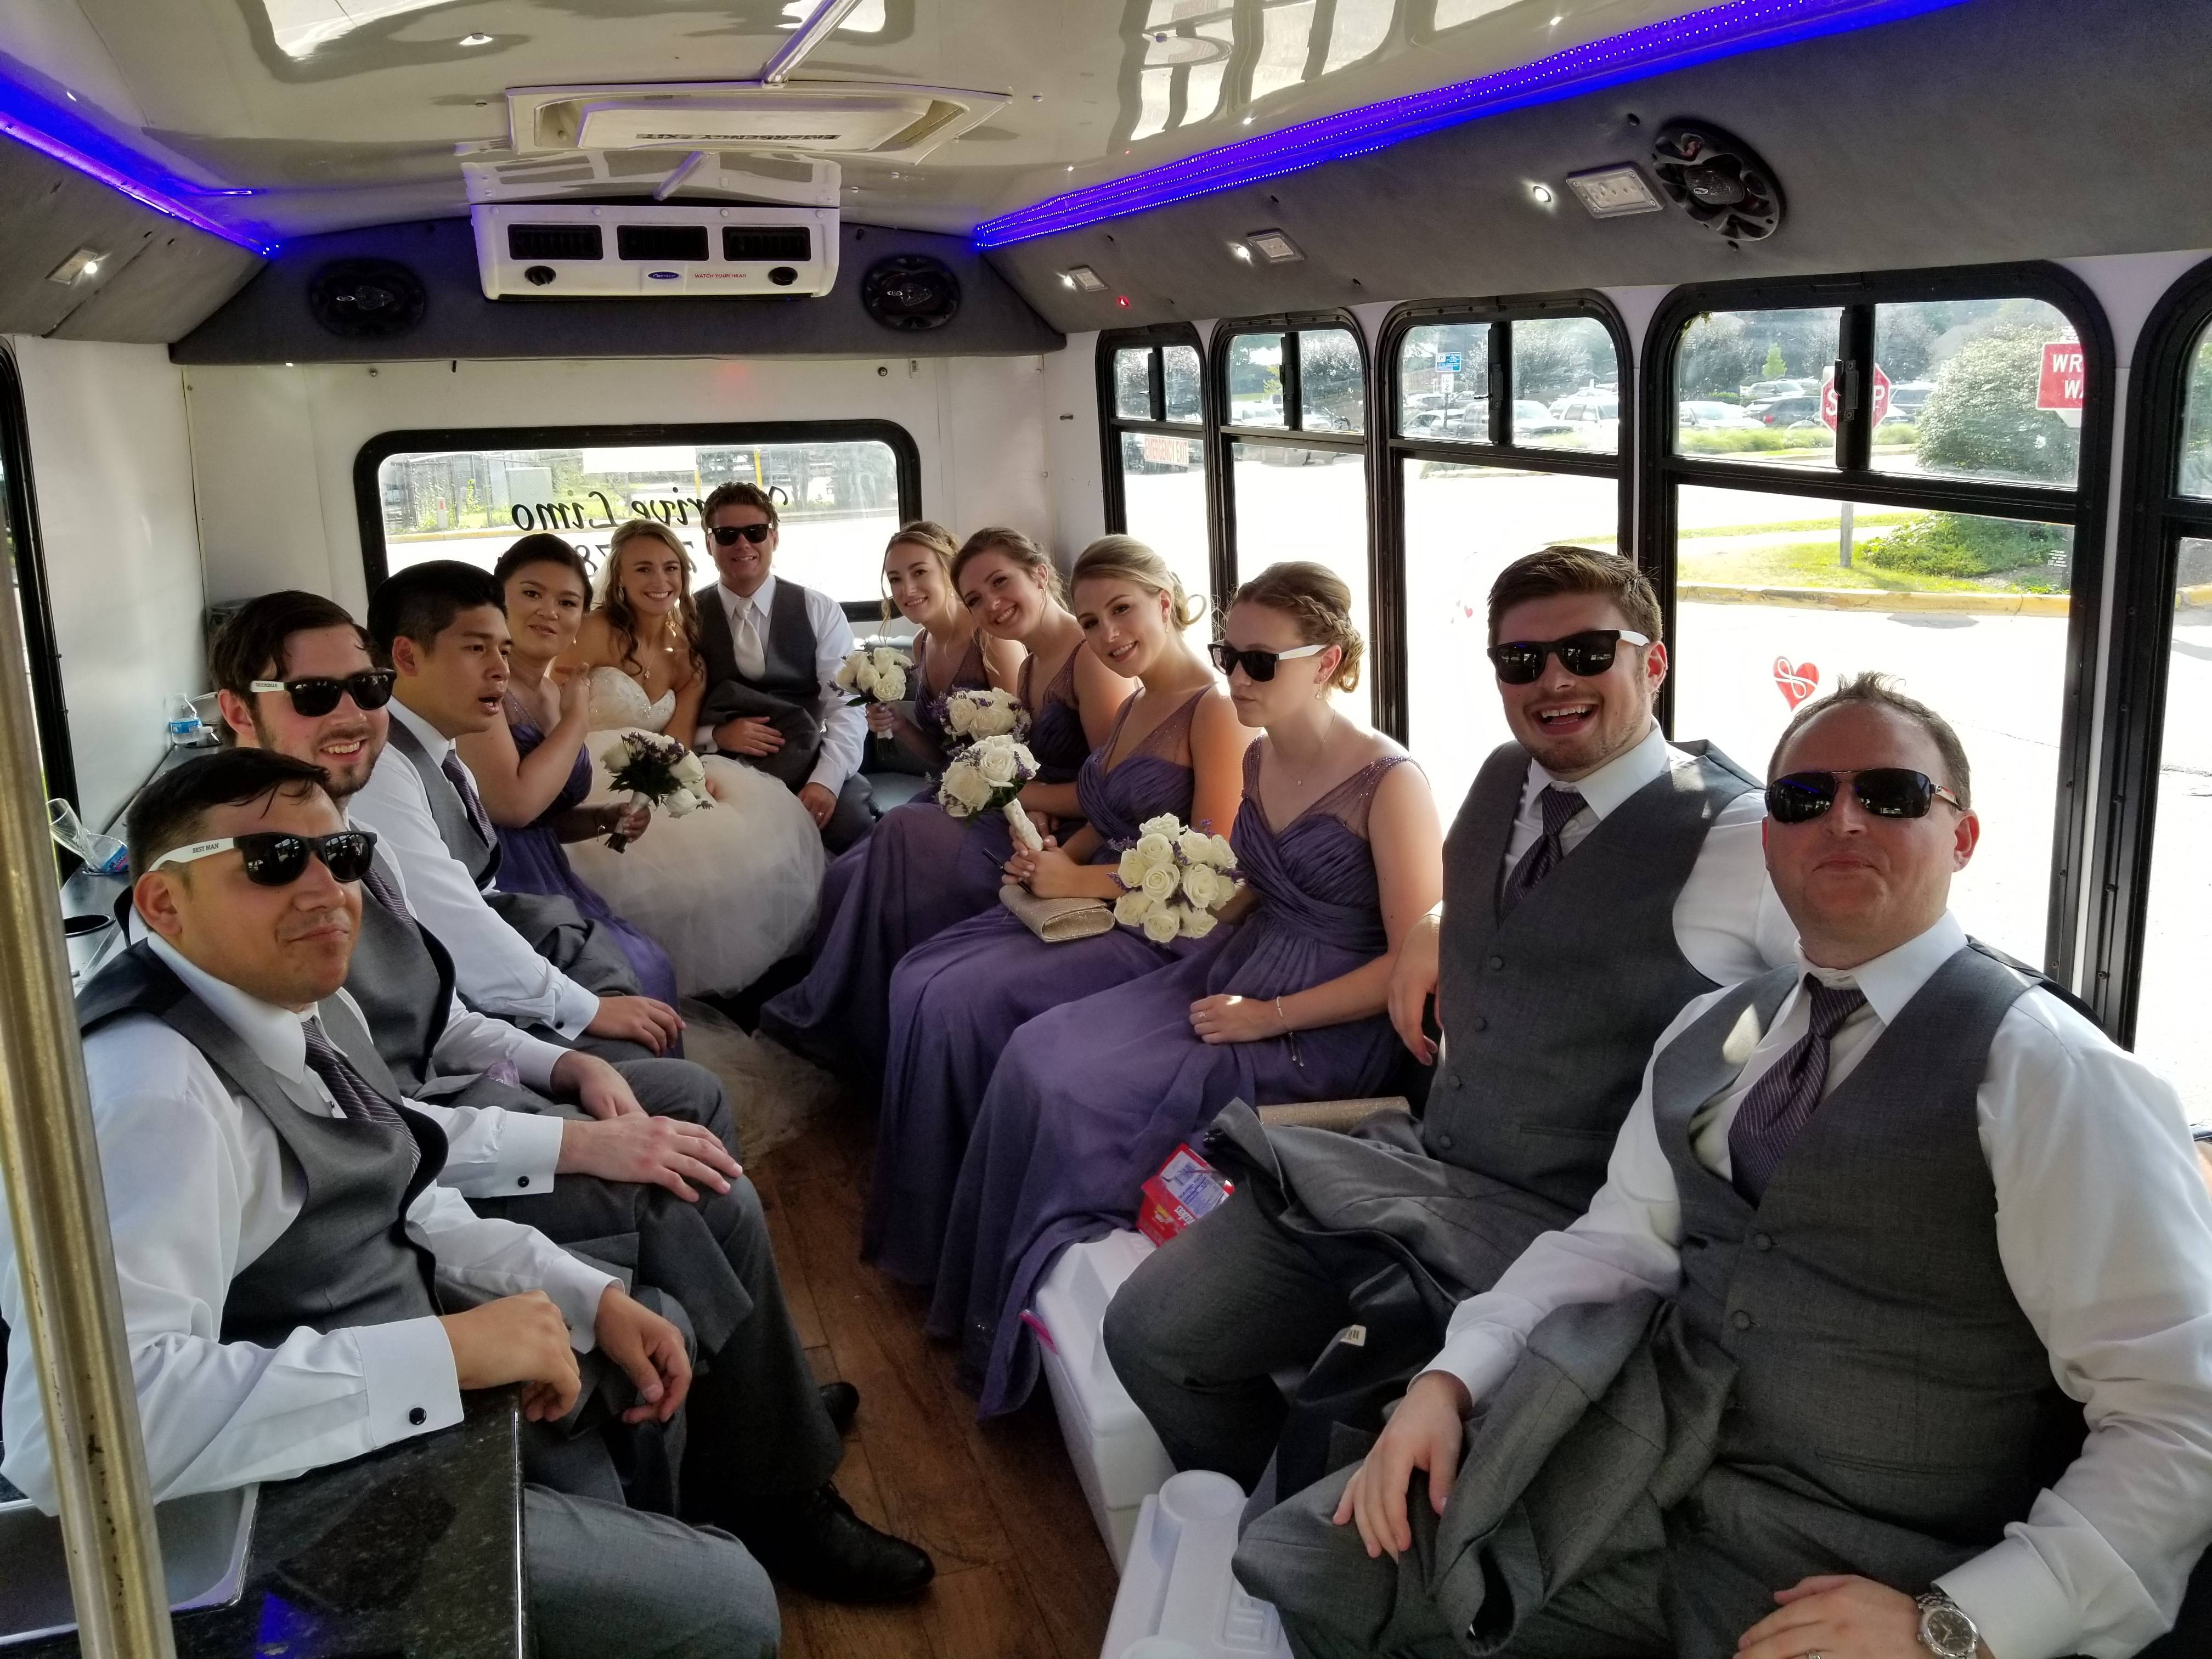 Baessler Wedding on the new #8 Party Bus